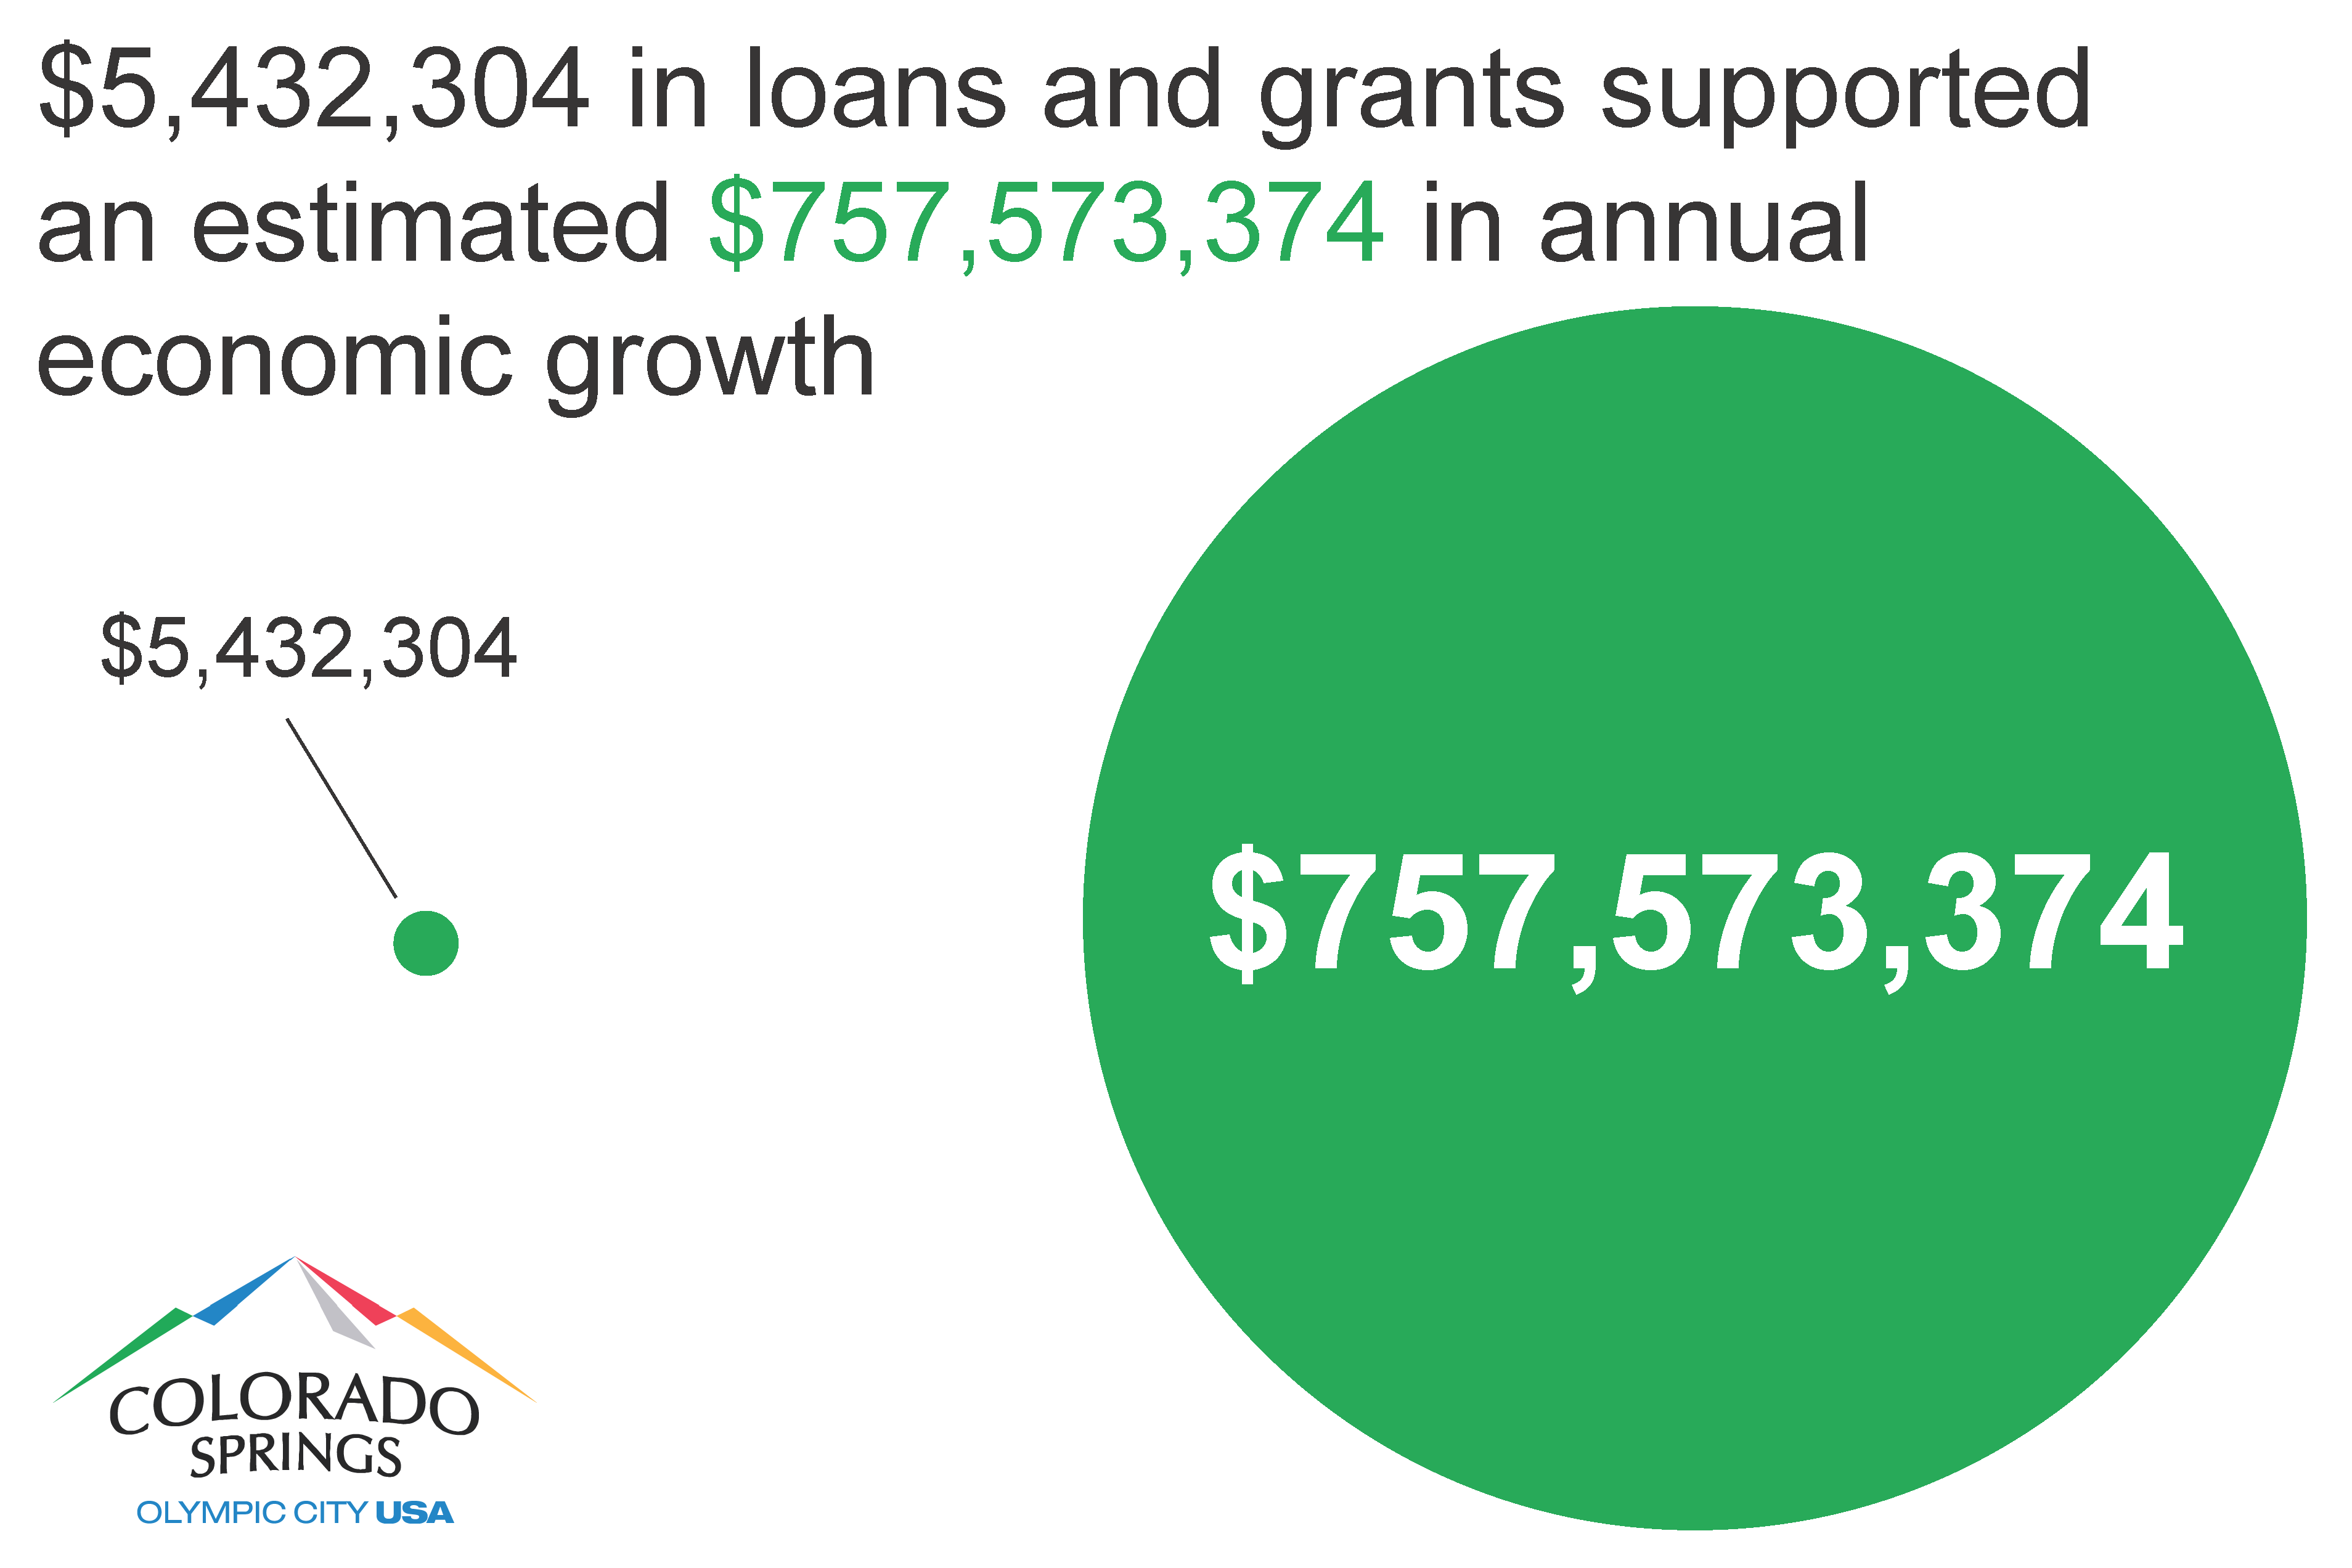 Approximately $5.4 million in loans and grants supported more than $757 million in annual economic growth.